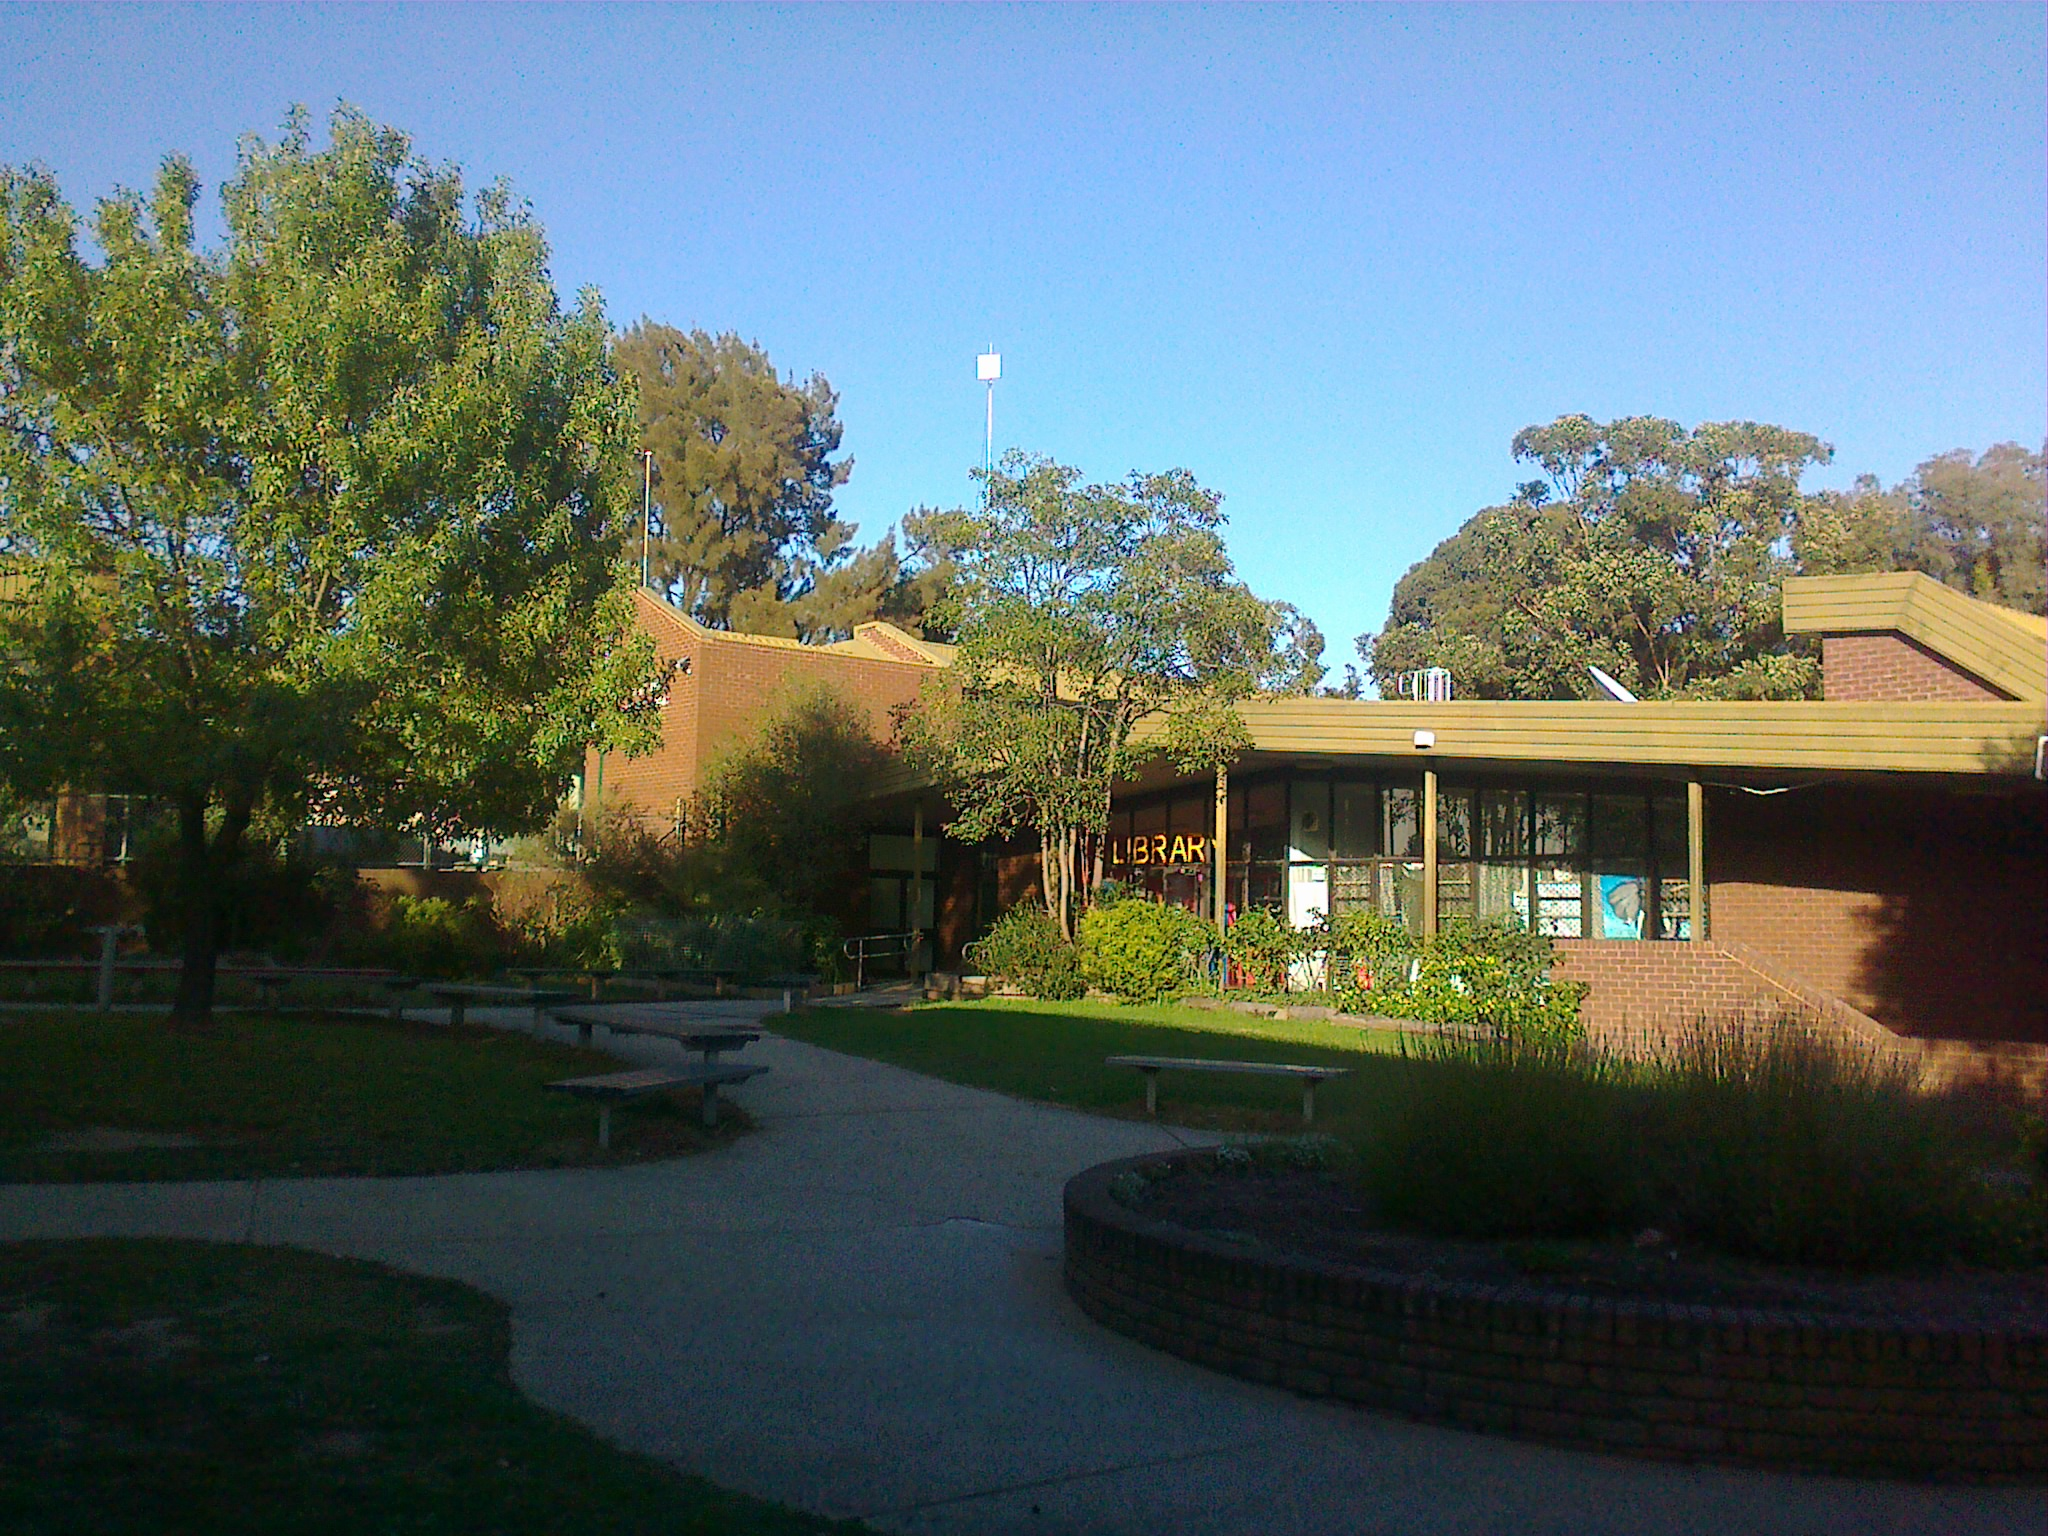 Seymour Australia  city photo : Description Library at Seymour College, Victoria, Australia, March ...